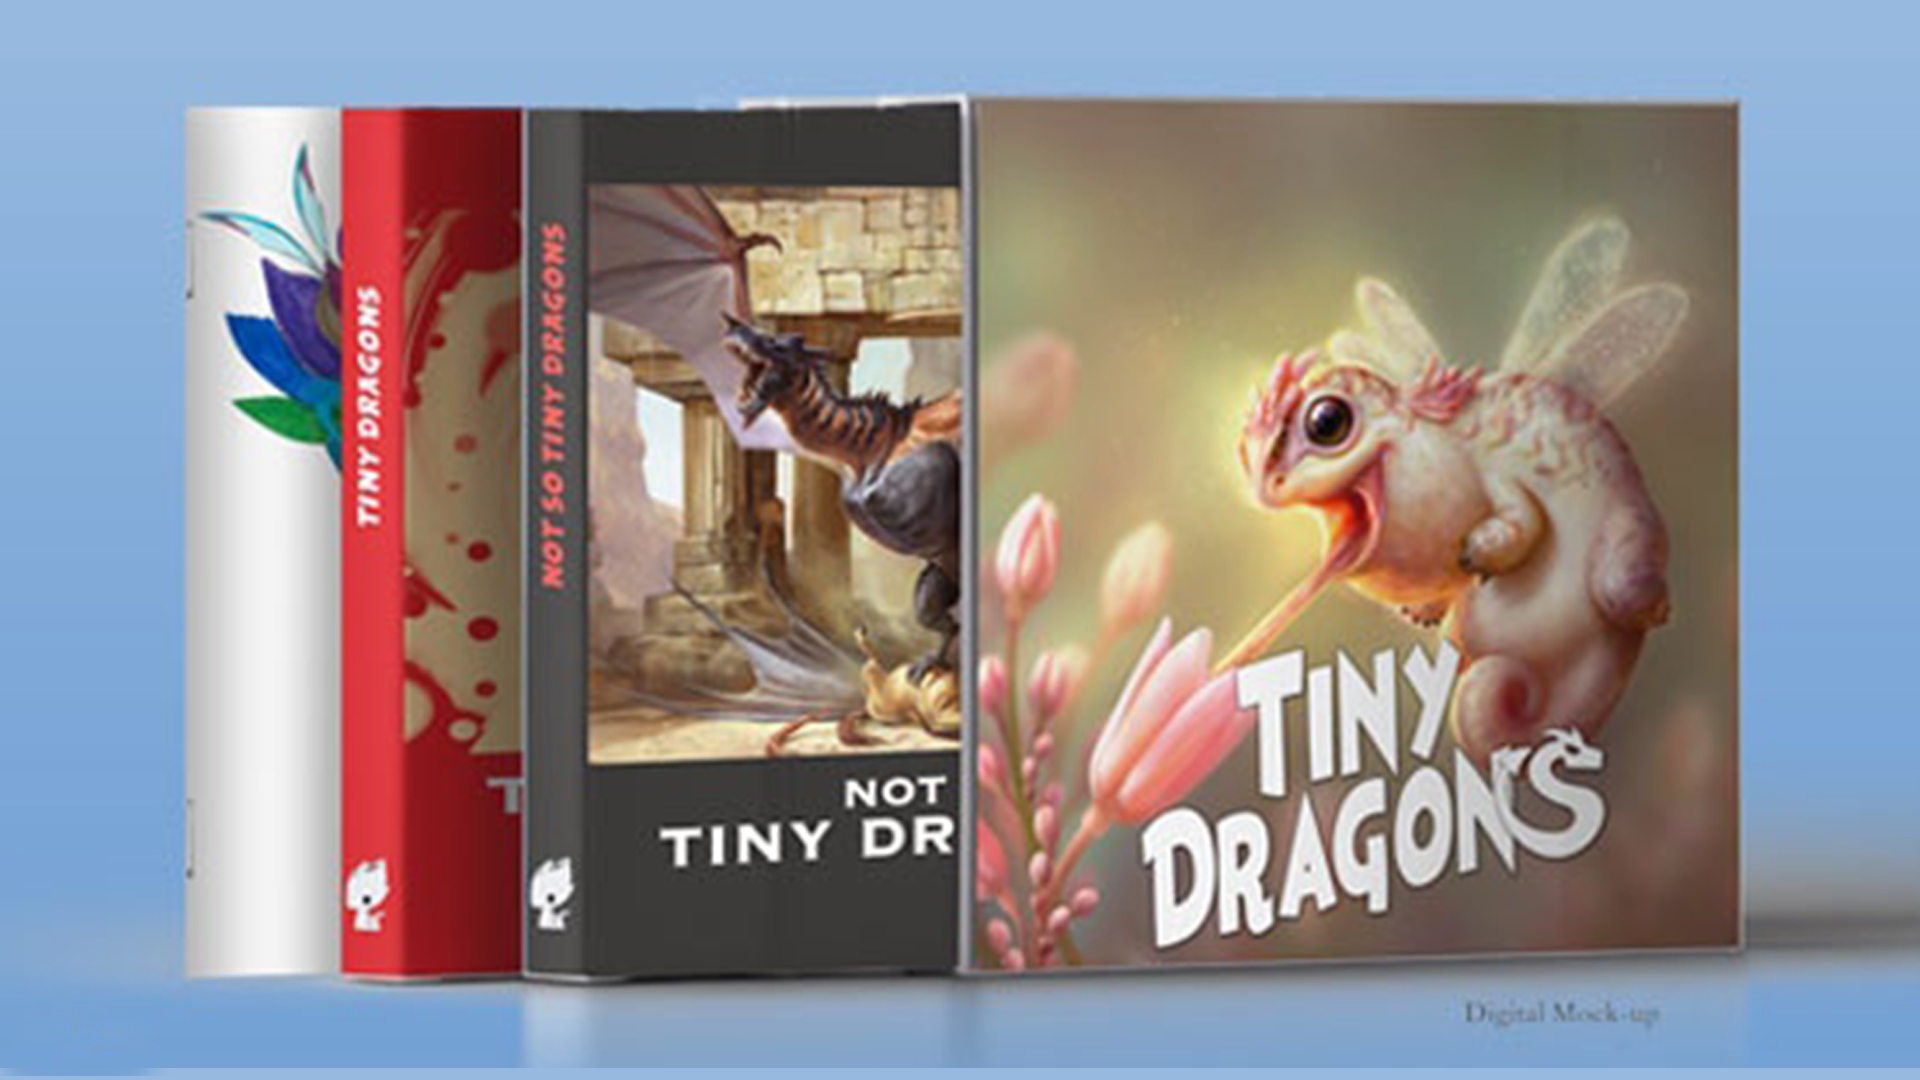 This is a digital mock-up of what the books and slip case will look like.